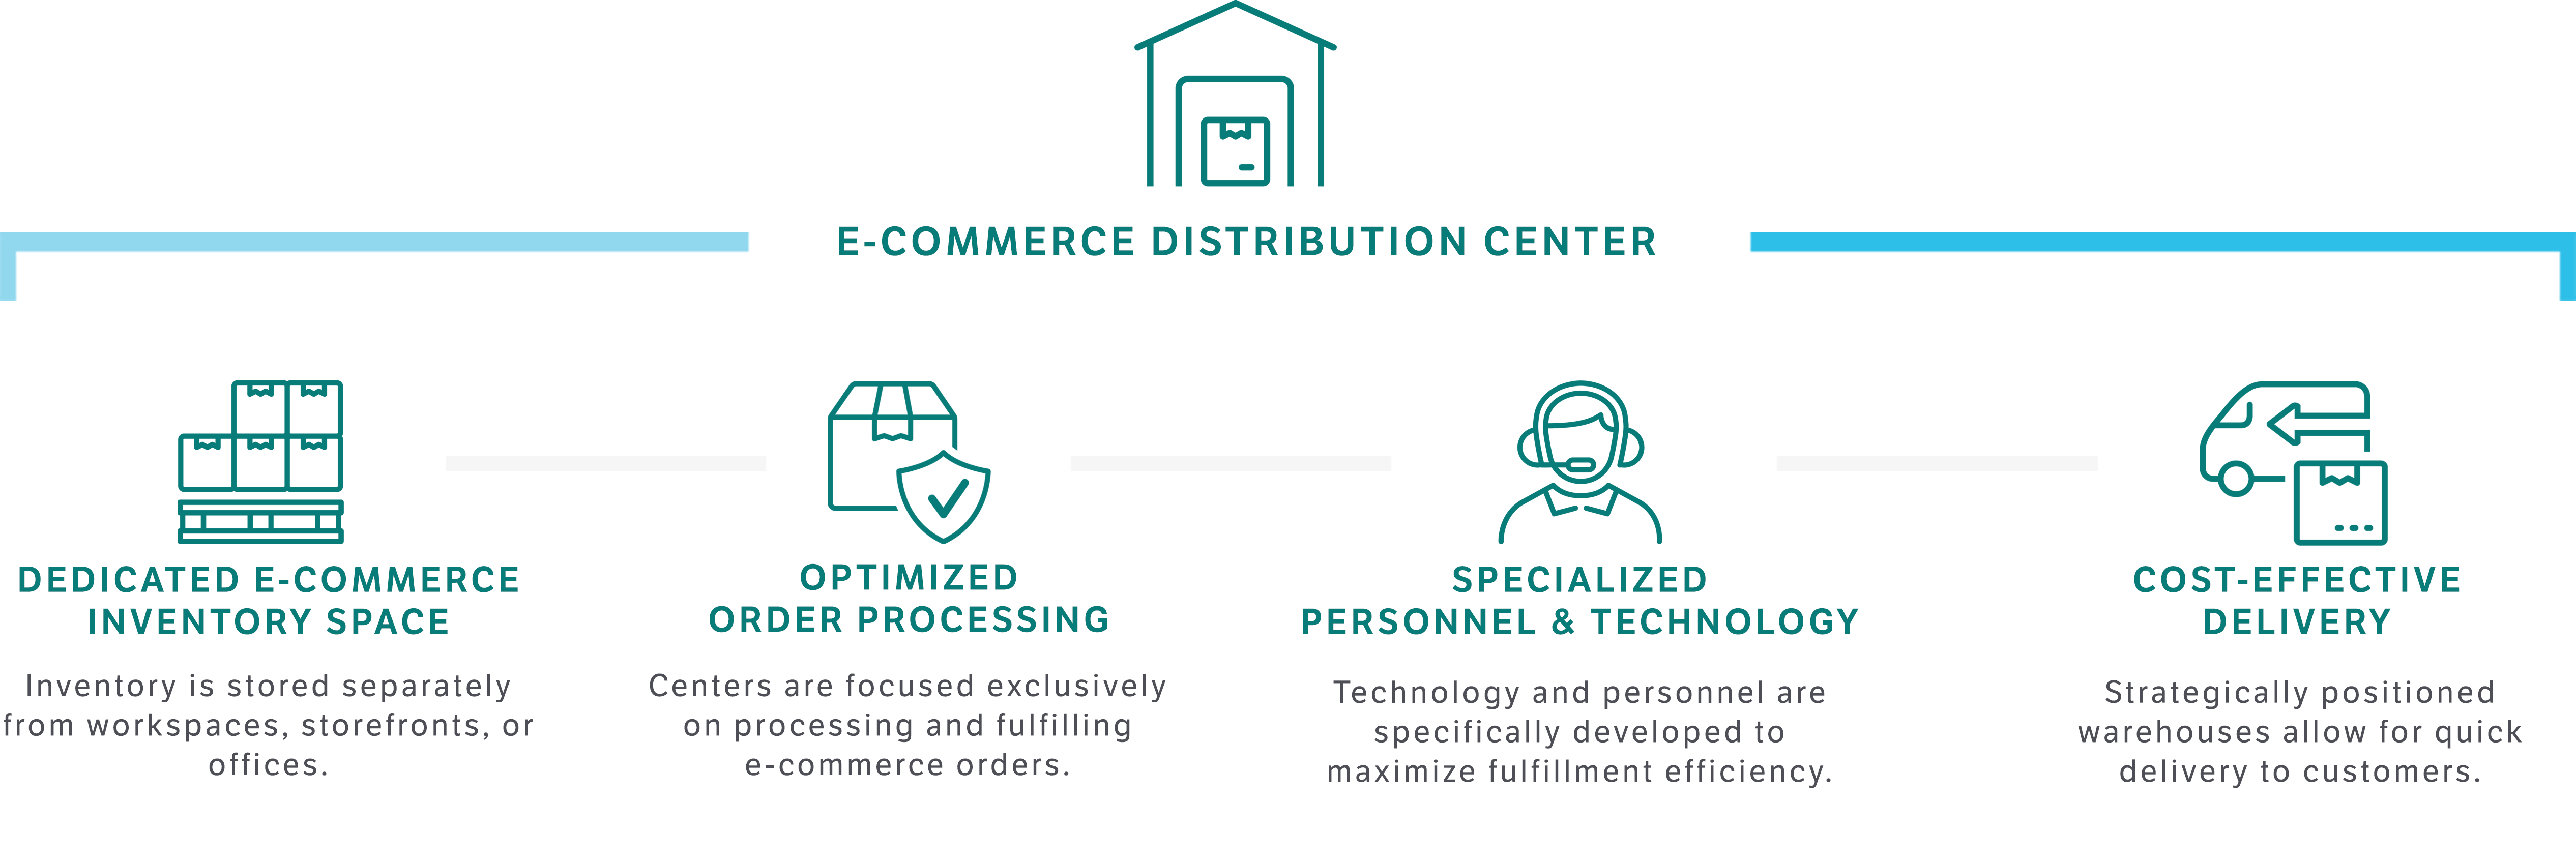 Why e-commerce fulfillment centers are so effective